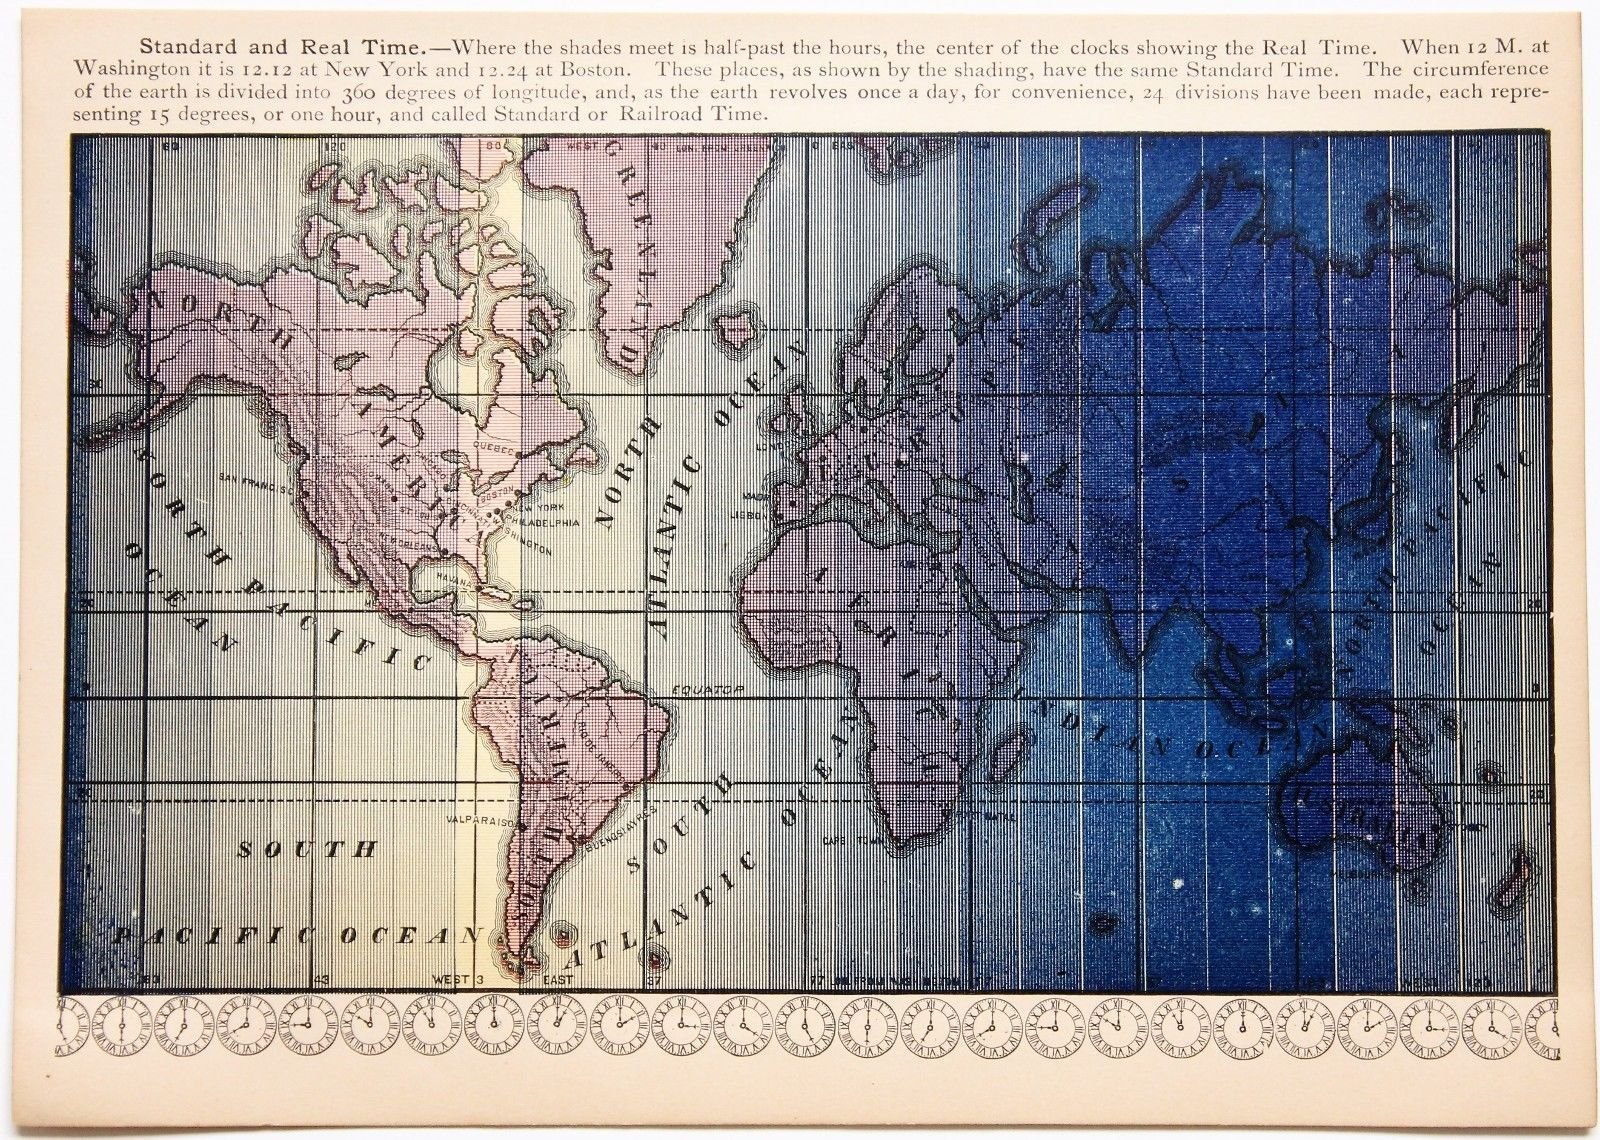 1886 world time zone map north america africa asia south america 1886 world time zone map north america africa asia south america rare original gumiabroncs Gallery